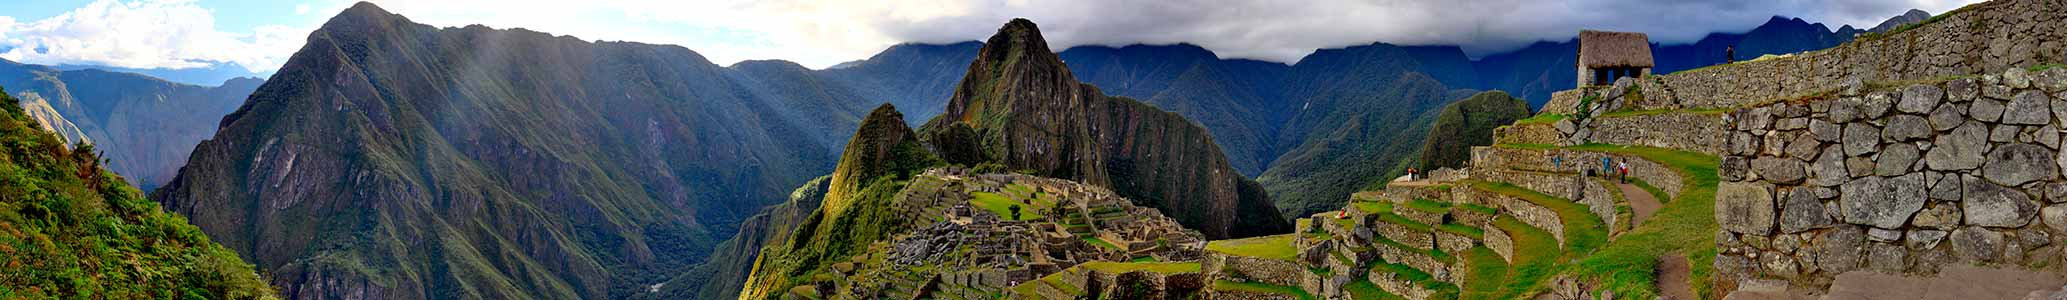 Tour Peru – Cusco Wonderfull 5 Days / 4 Nights – Foreign Tourist